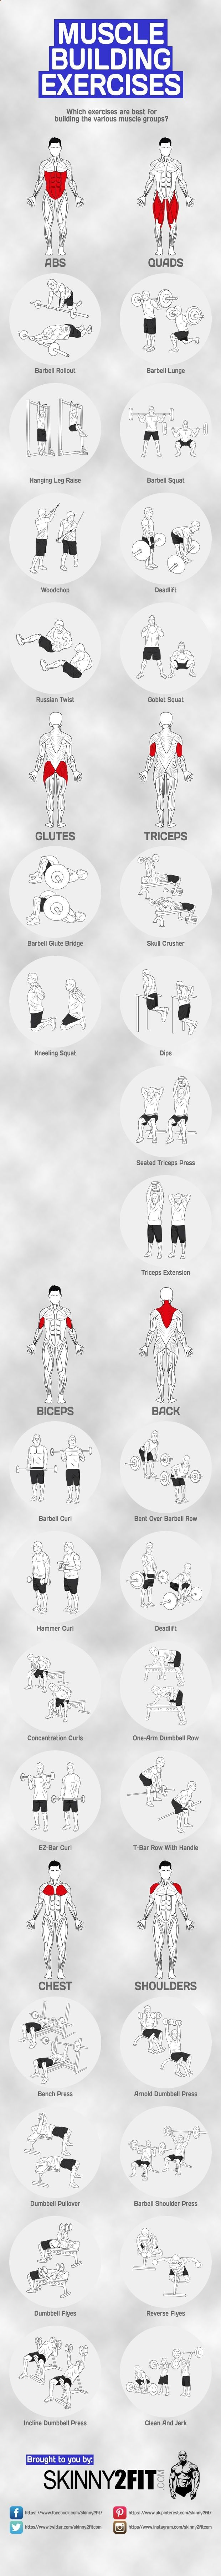 What are the top muscle building exercises for each muscle group? This graphic will show you the best exercises for serious strength and muscle gains. https://www.musclesaurus.com/bodybuilding/